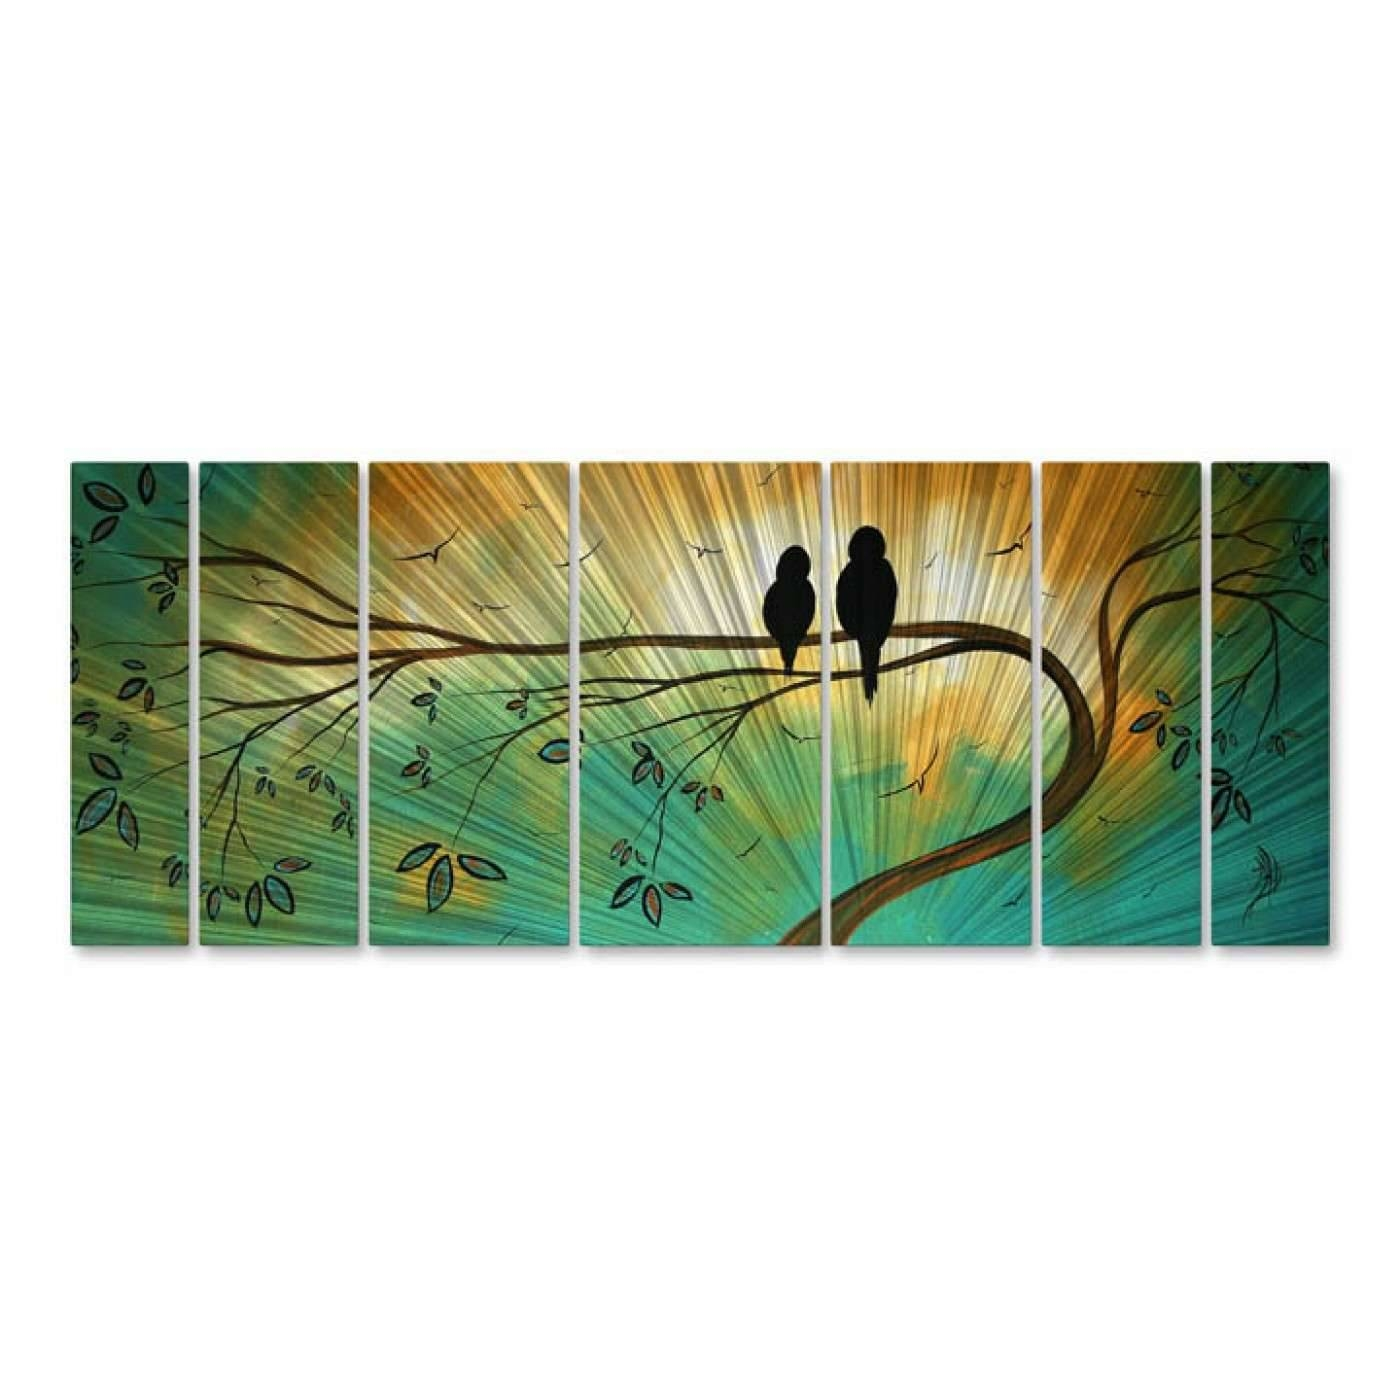 All My Walls Mad00120 Decor | Goedeker's With Current Megan Duncanson Metal Wall Art (View 6 of 25)